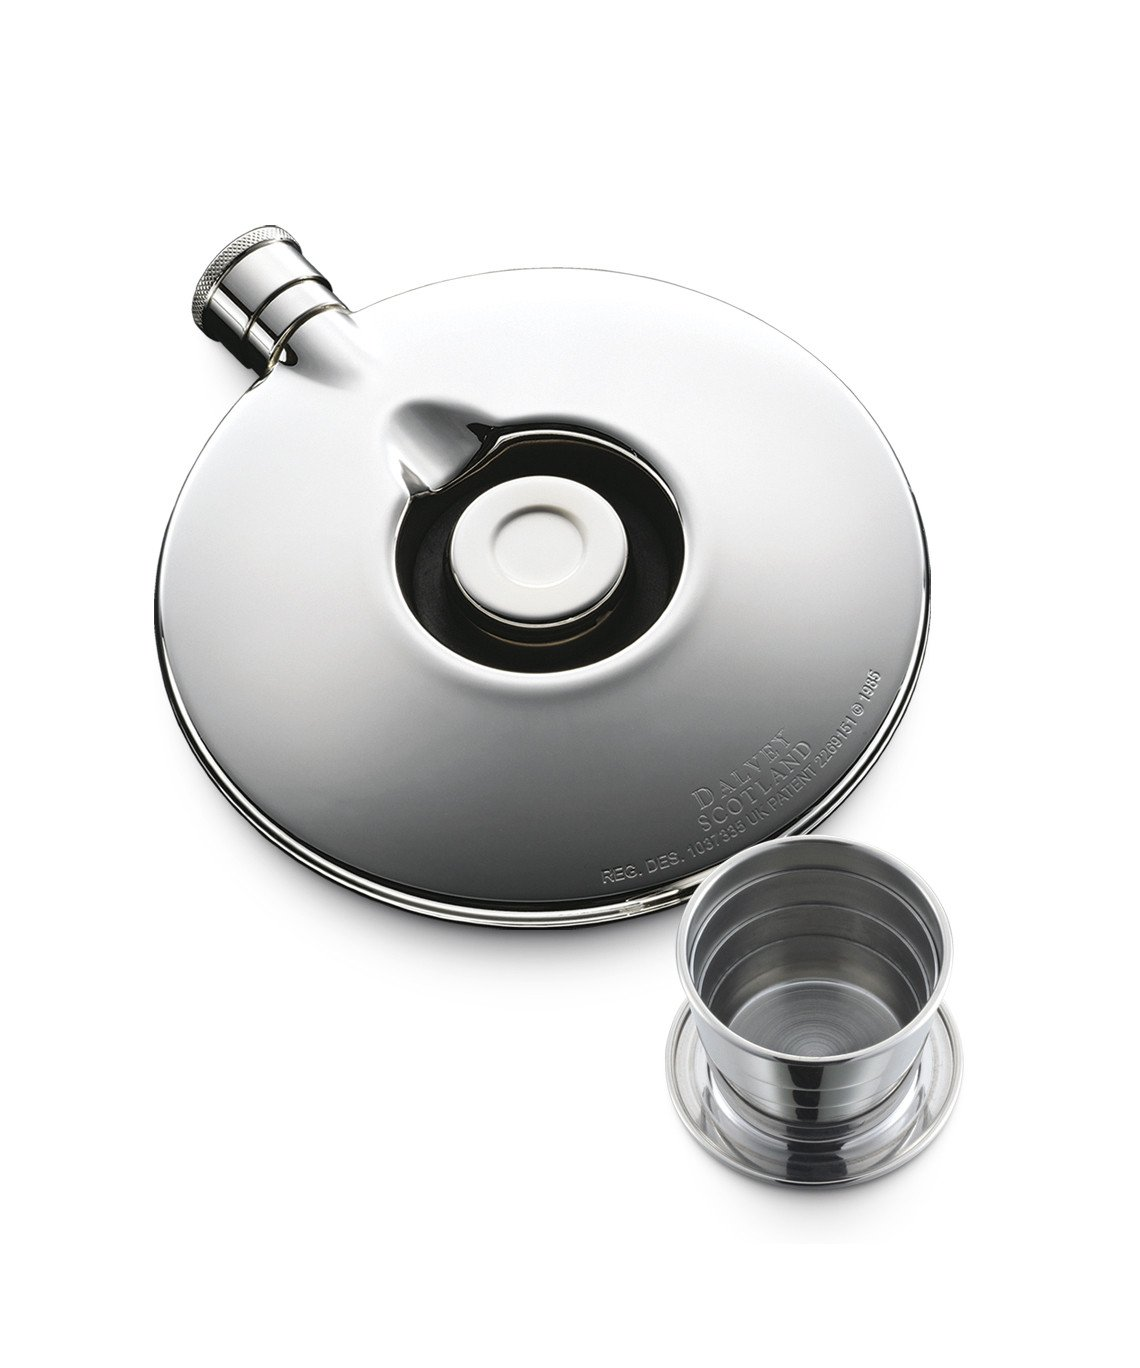 Dalvey Desktop Flask with Cup Accessory - DY-458